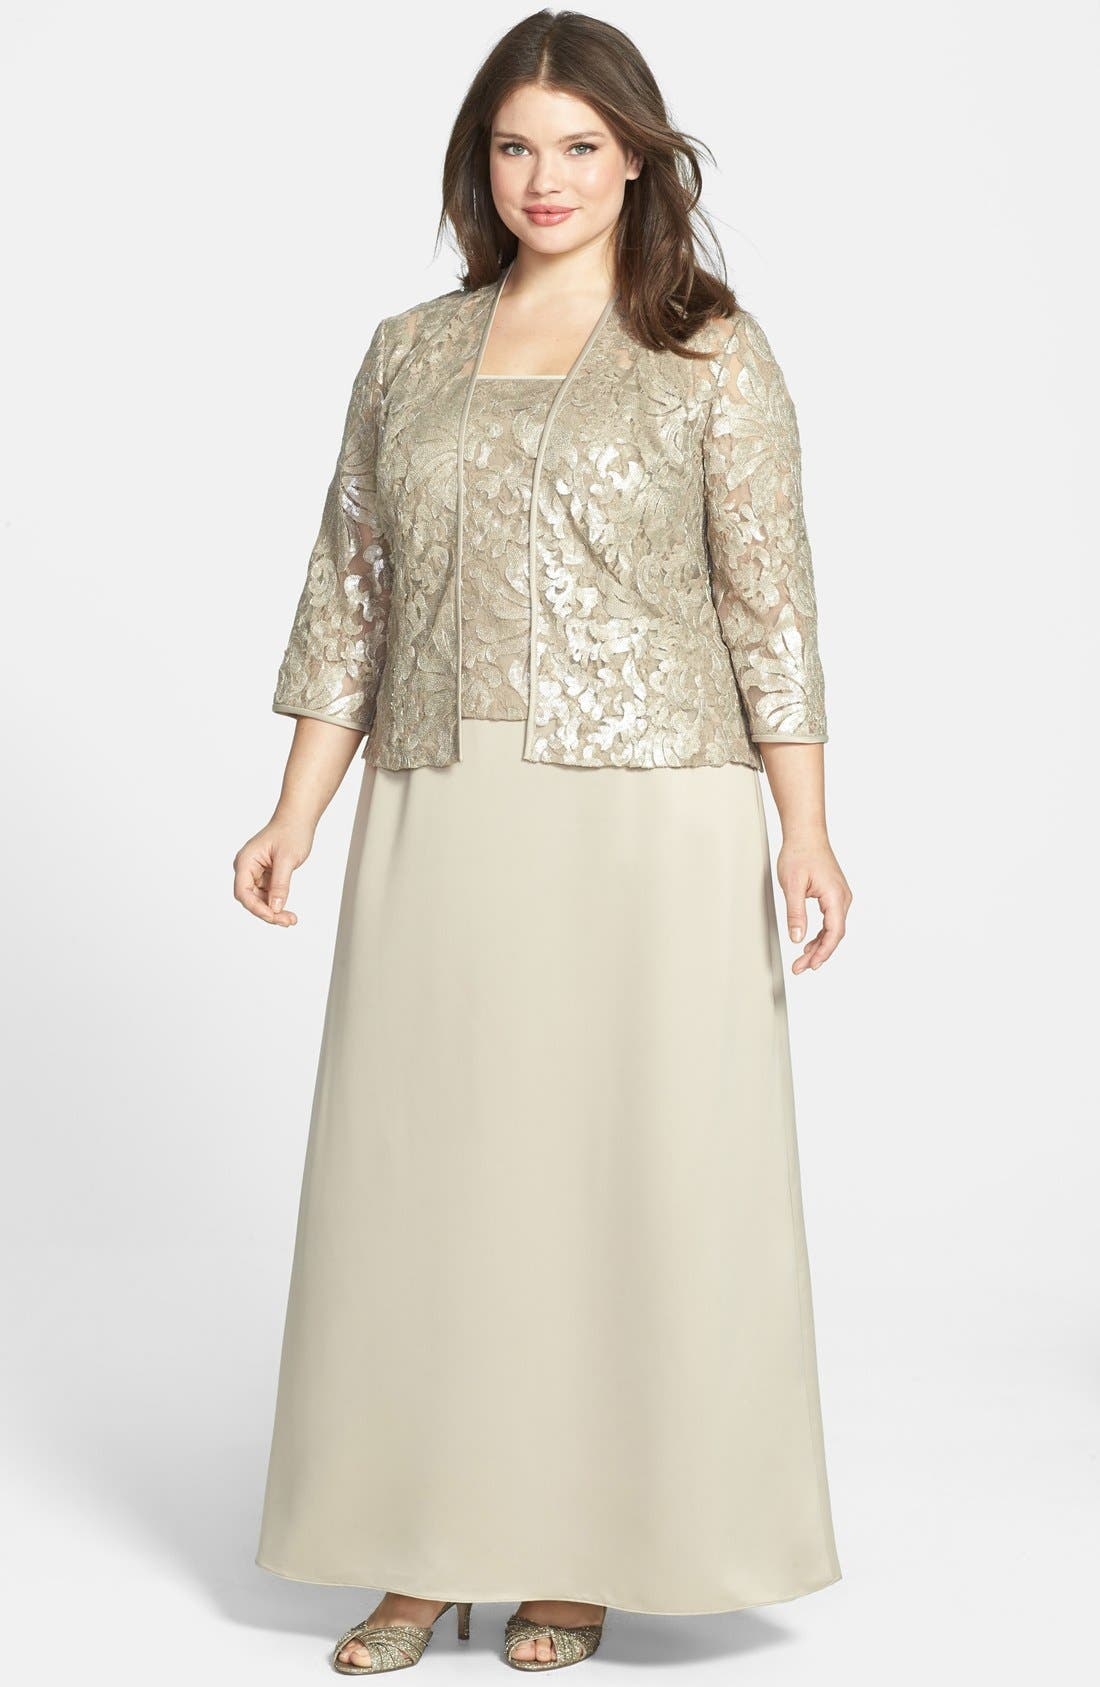 Alternate Image 1 Selected - Alex Evenings Embellished Chiffon Gown & Jacket (Plus Size)